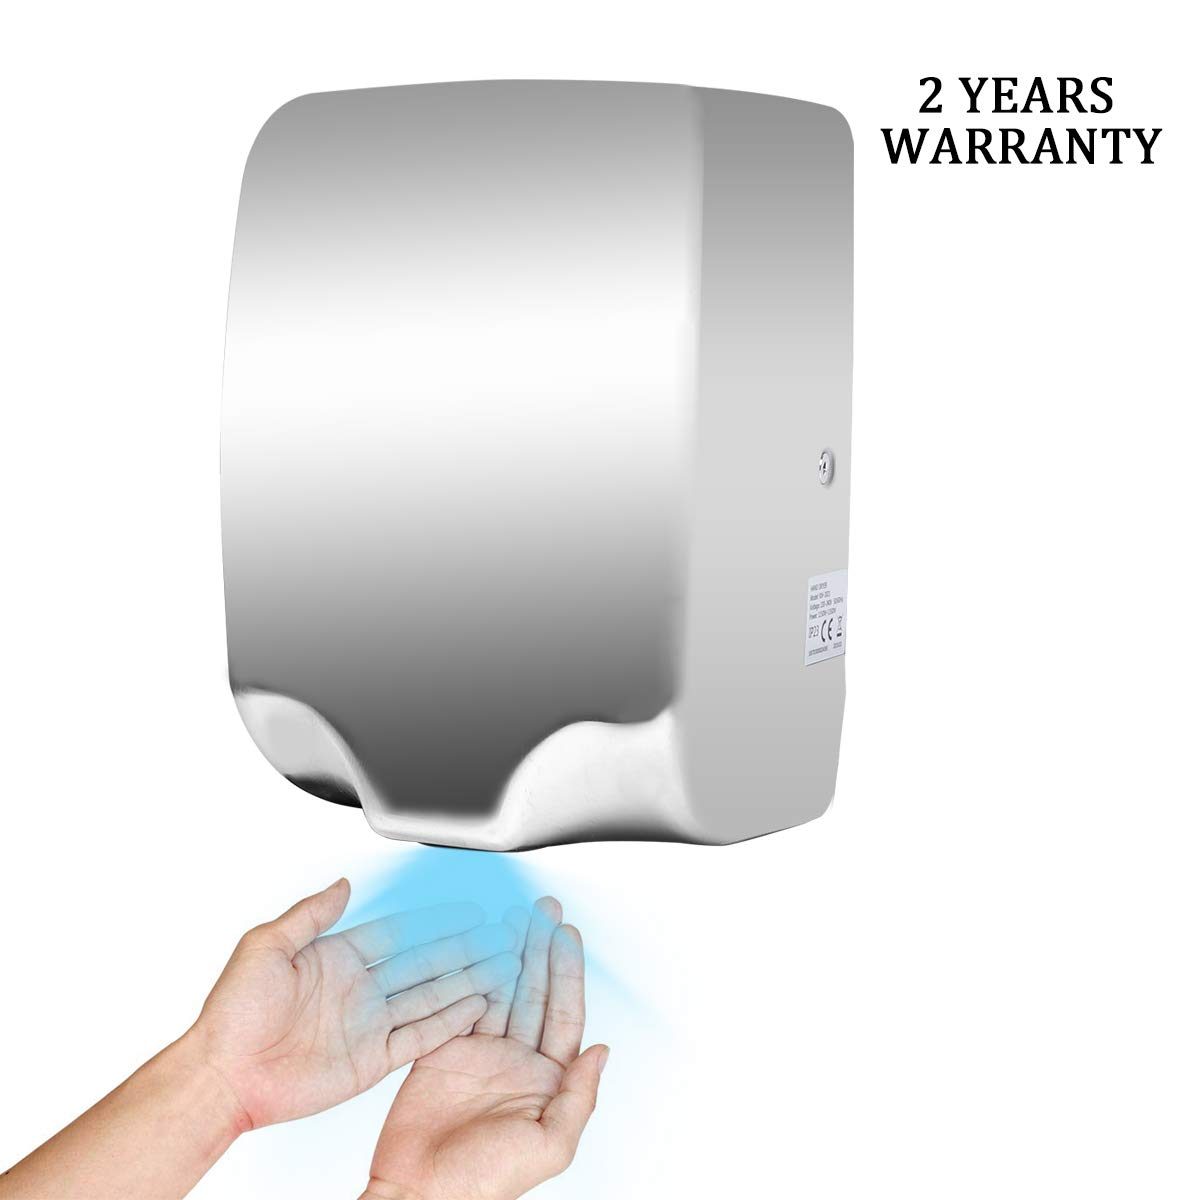 Goetland Stainless Steel Commercial Hand Dryer 1800w Automatic High Speed Heavy Duty White